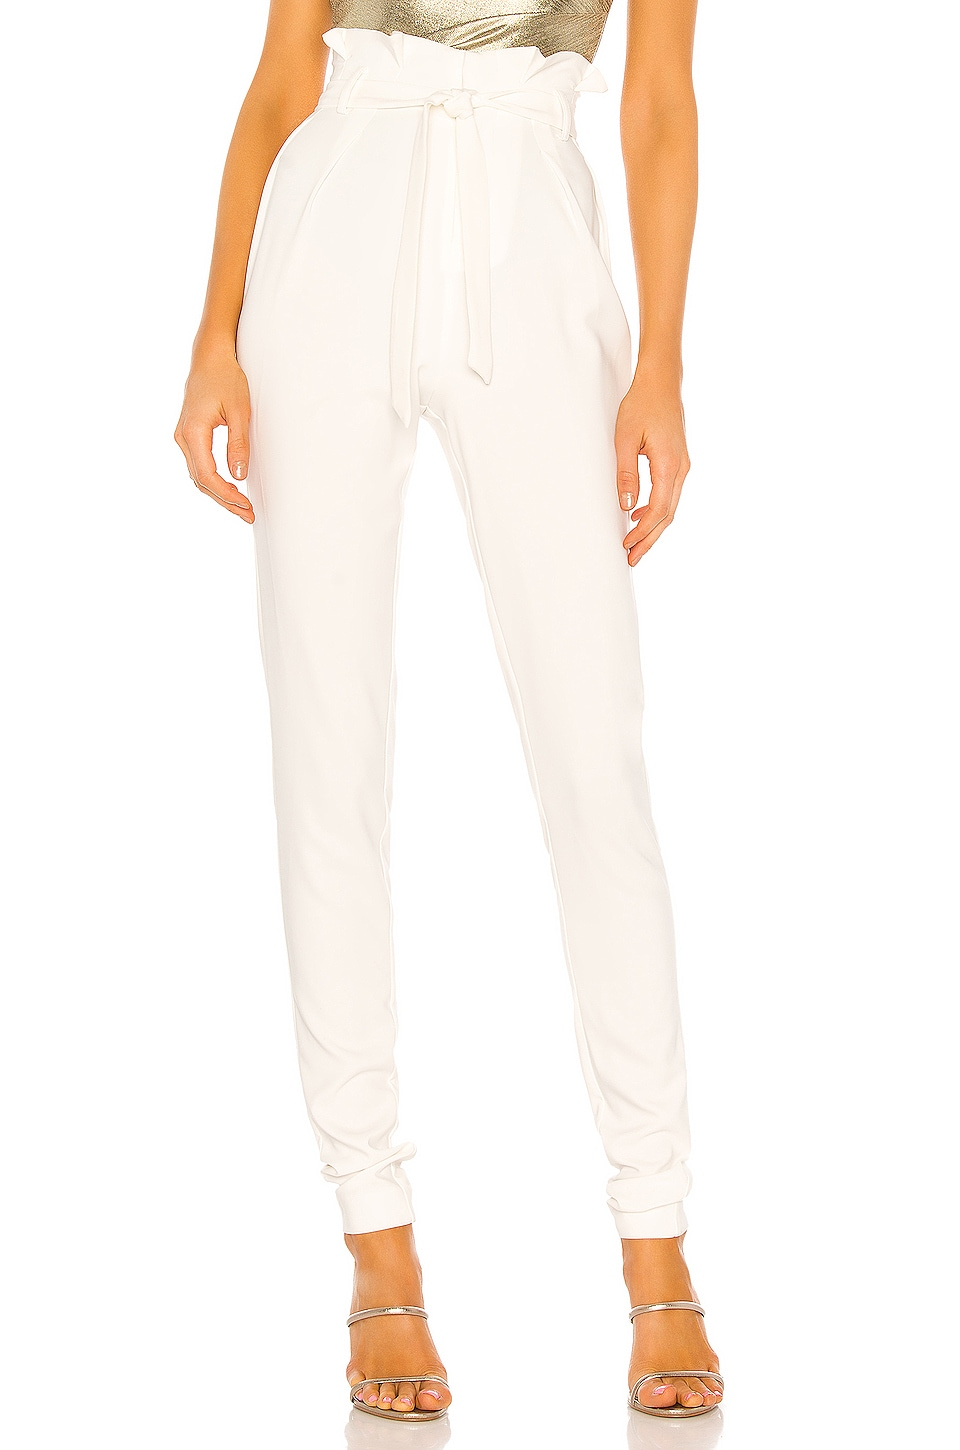 Michael Costello x REVOLVE Perry Pant in Ivory